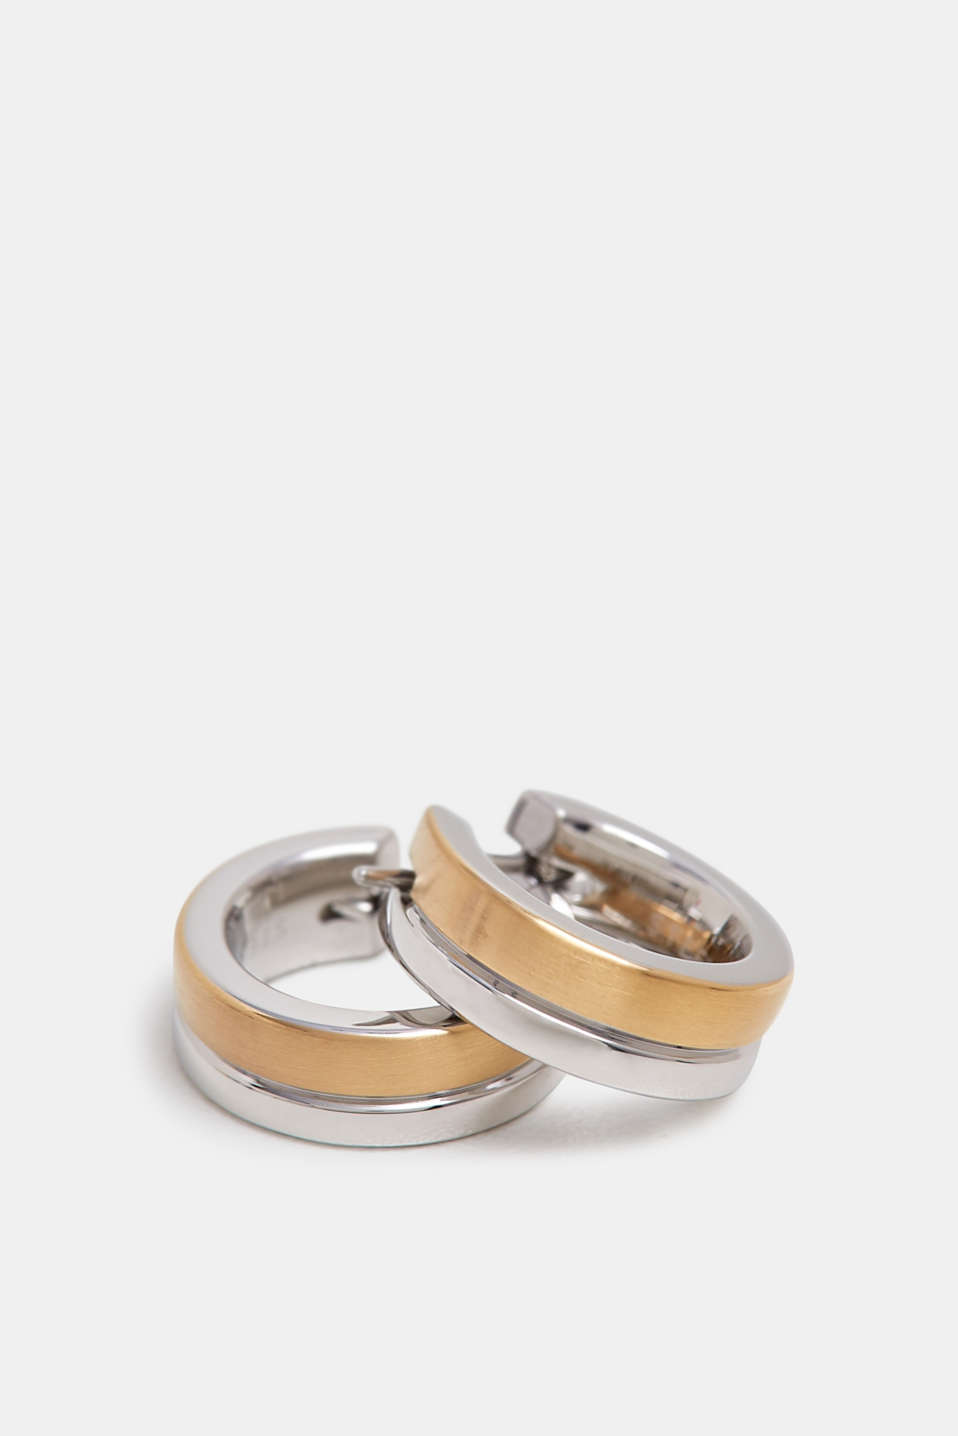 Esprit - Two-tone earrings in stainless steel